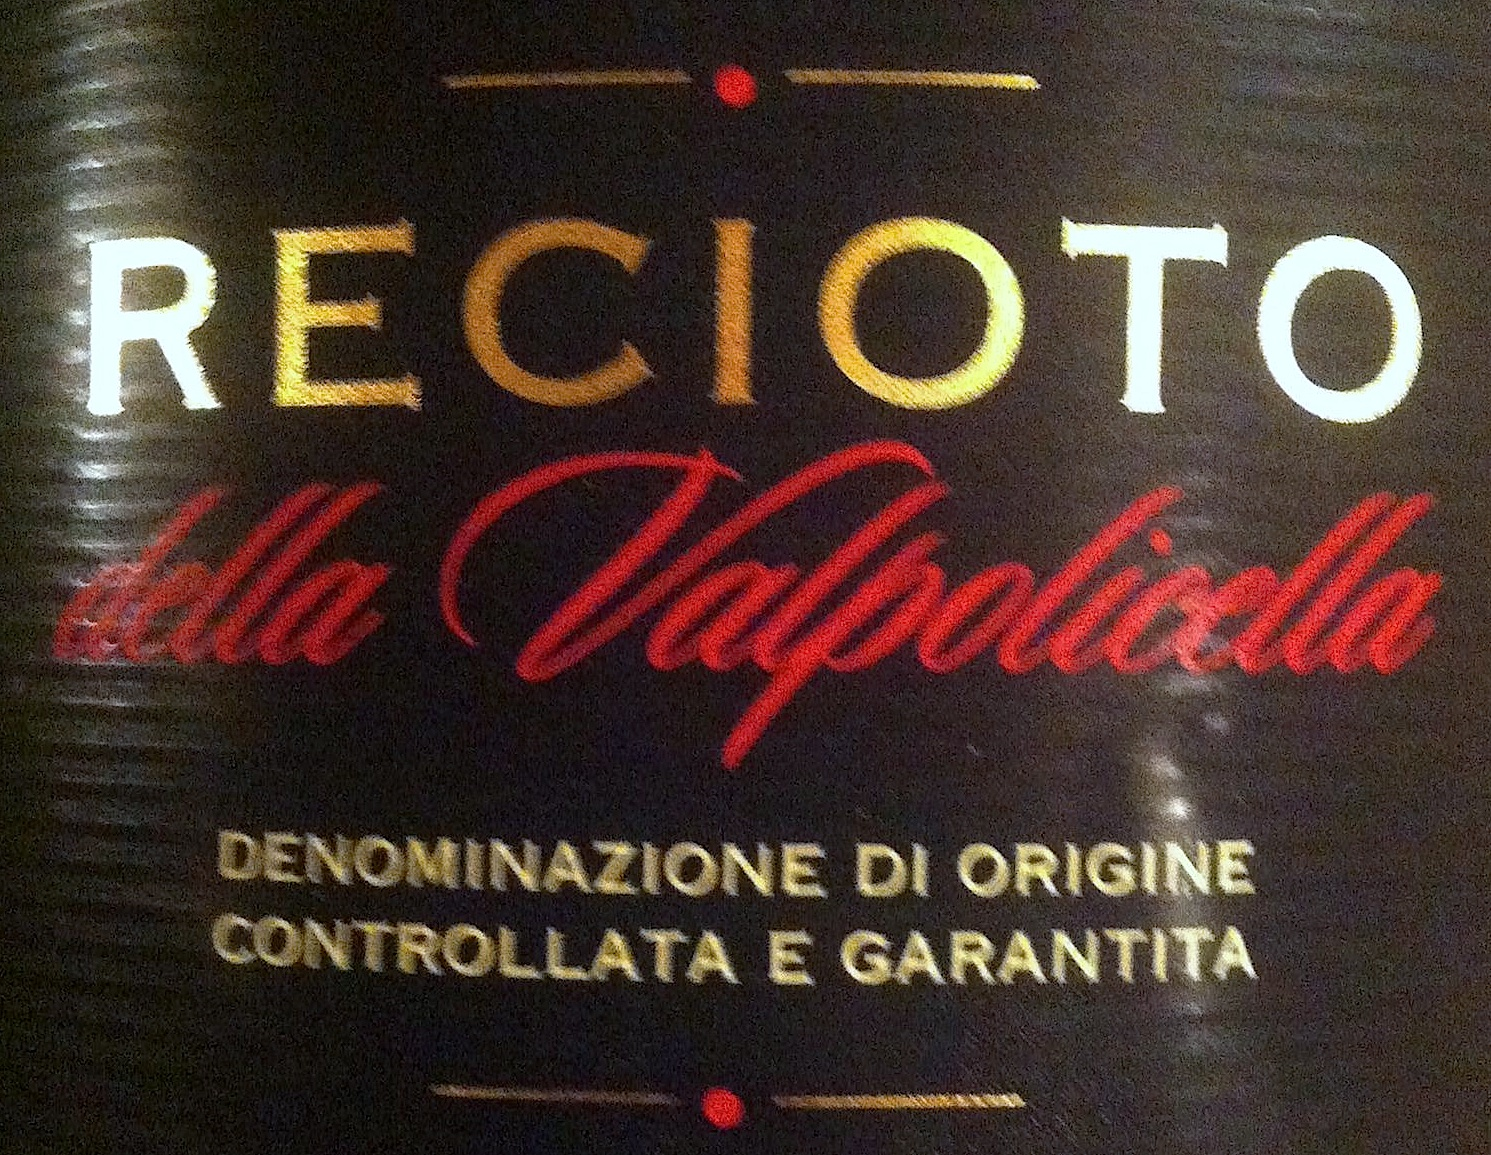 Recioto label